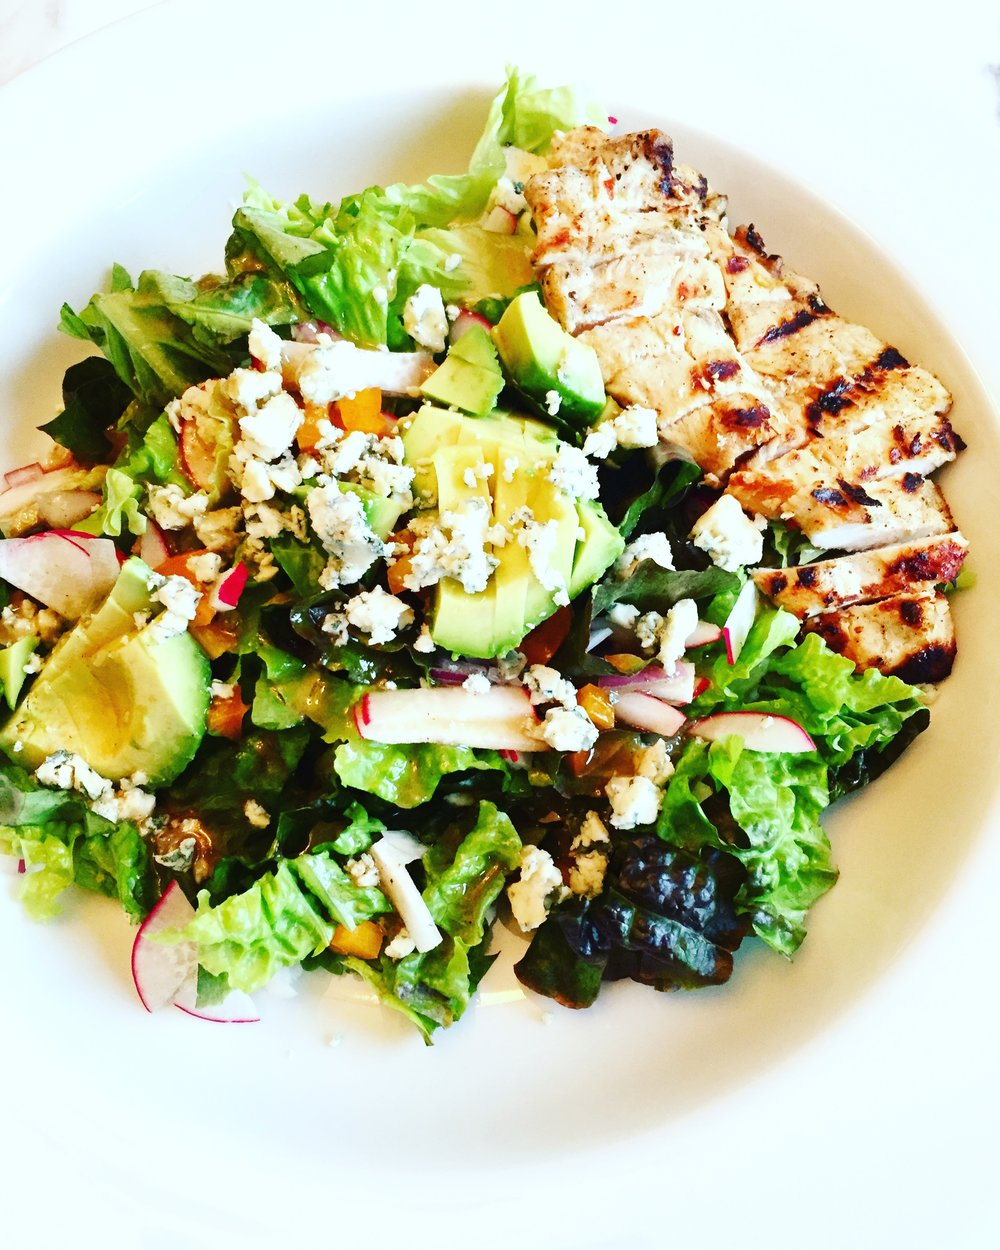 Red leaf lettuce with avocado, grilled chicken, veggies, blue cheese and homemade vinaigrette